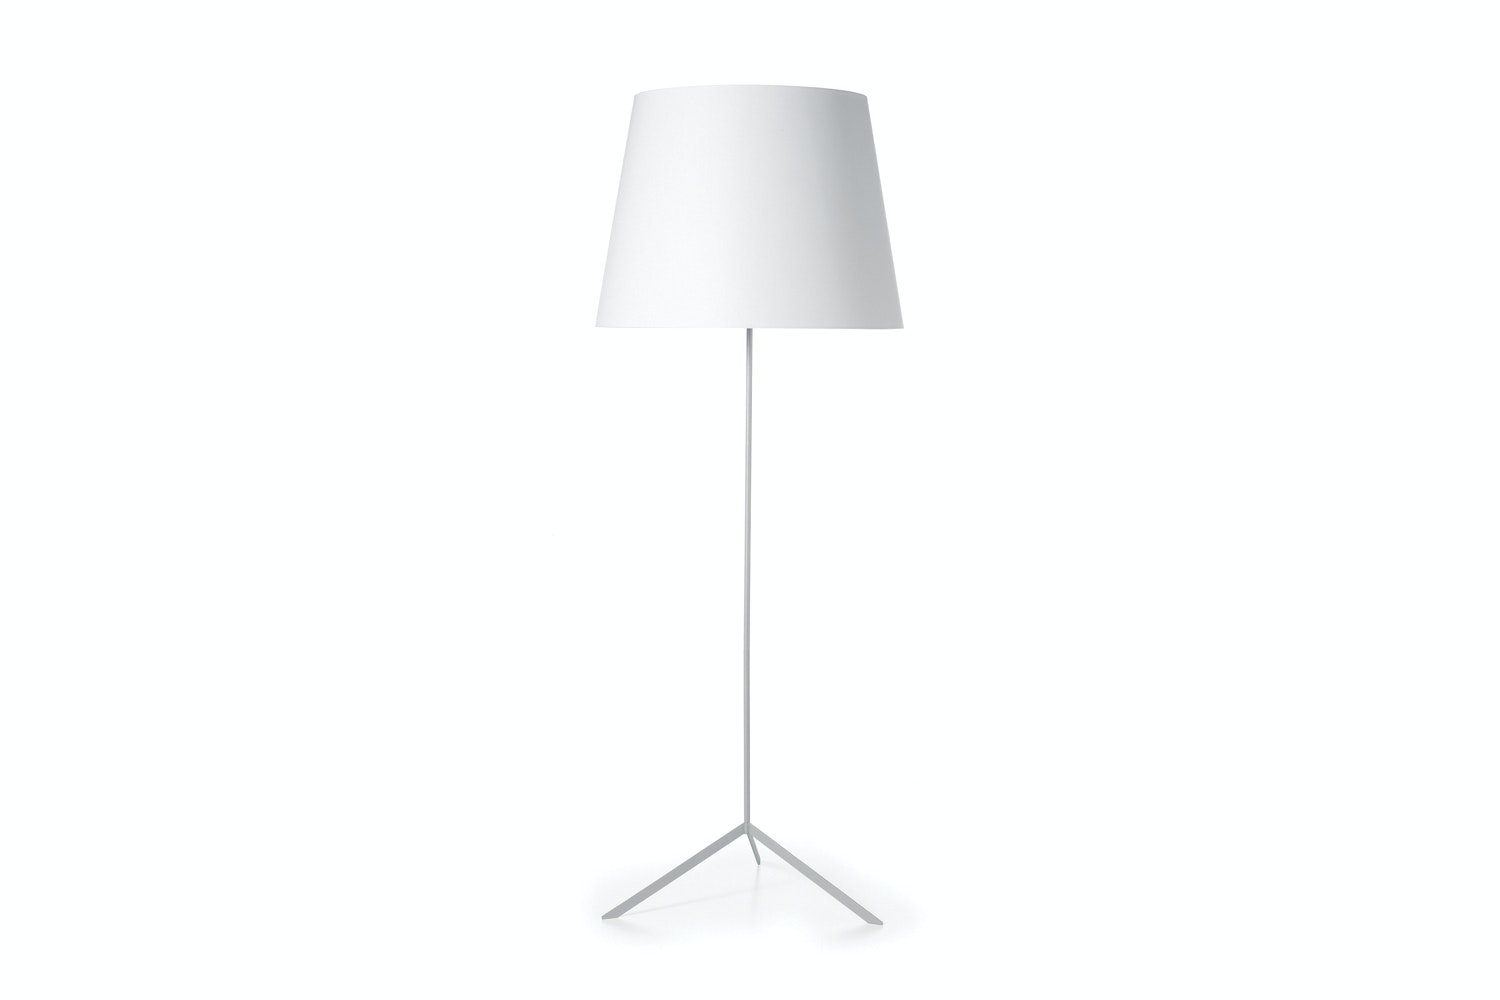 Double Shade Floor Lamp by Marcel Wanders for Moooi